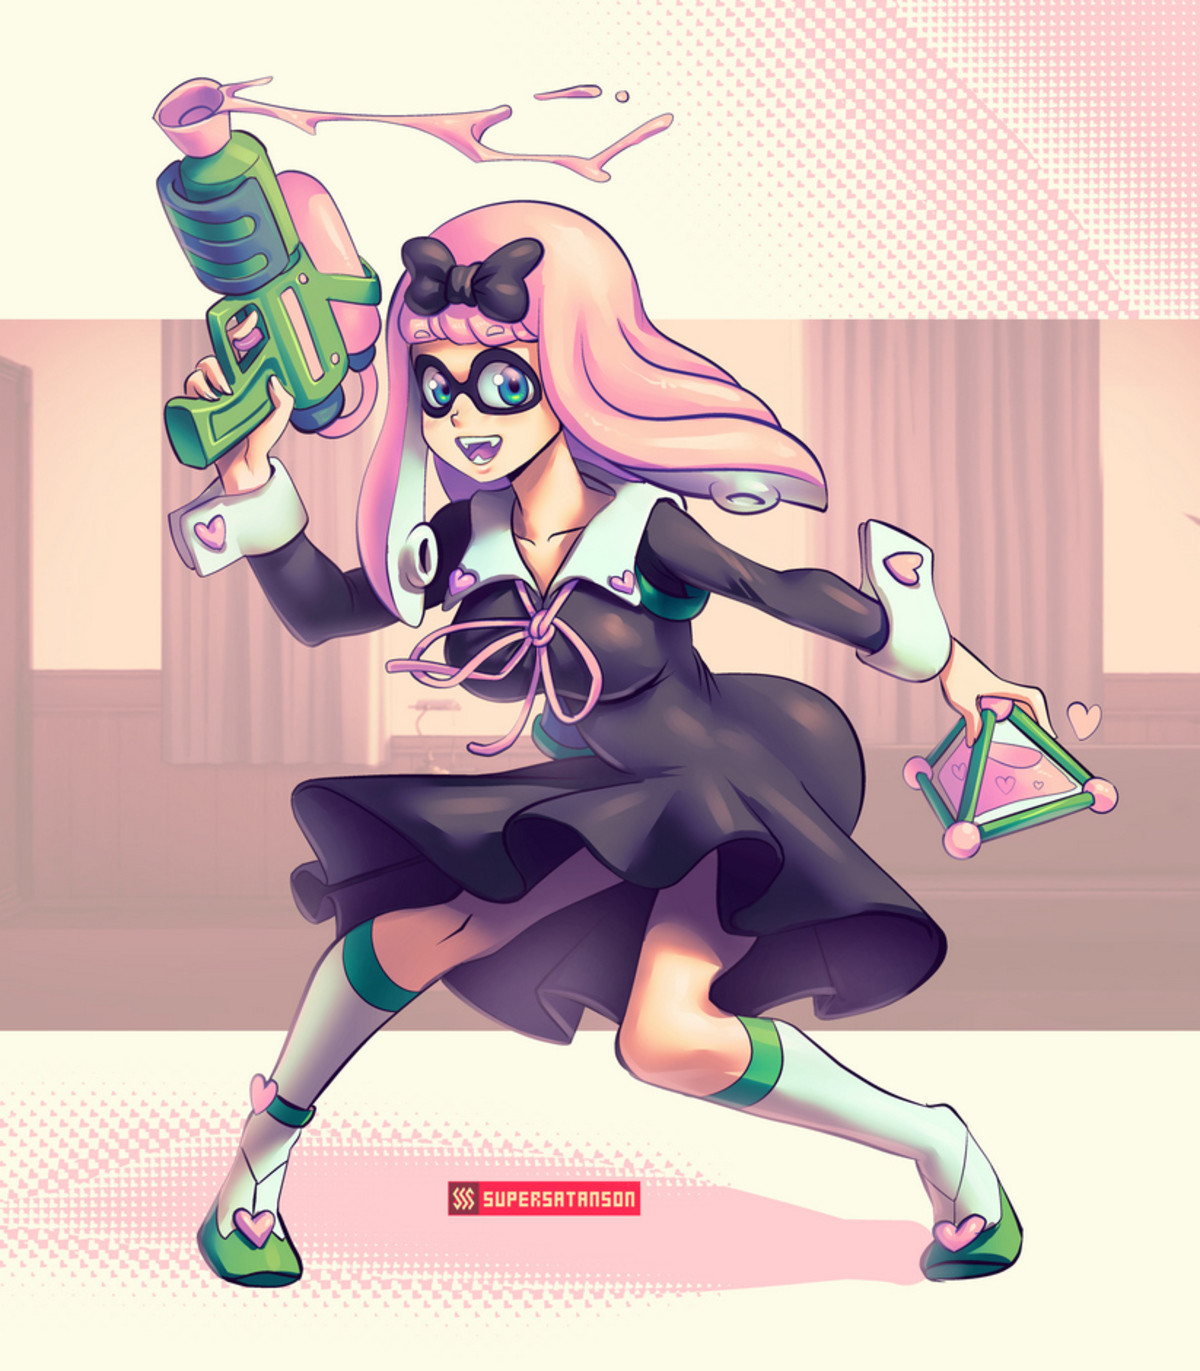 Inkling Chika. .. What's wrong with her ass